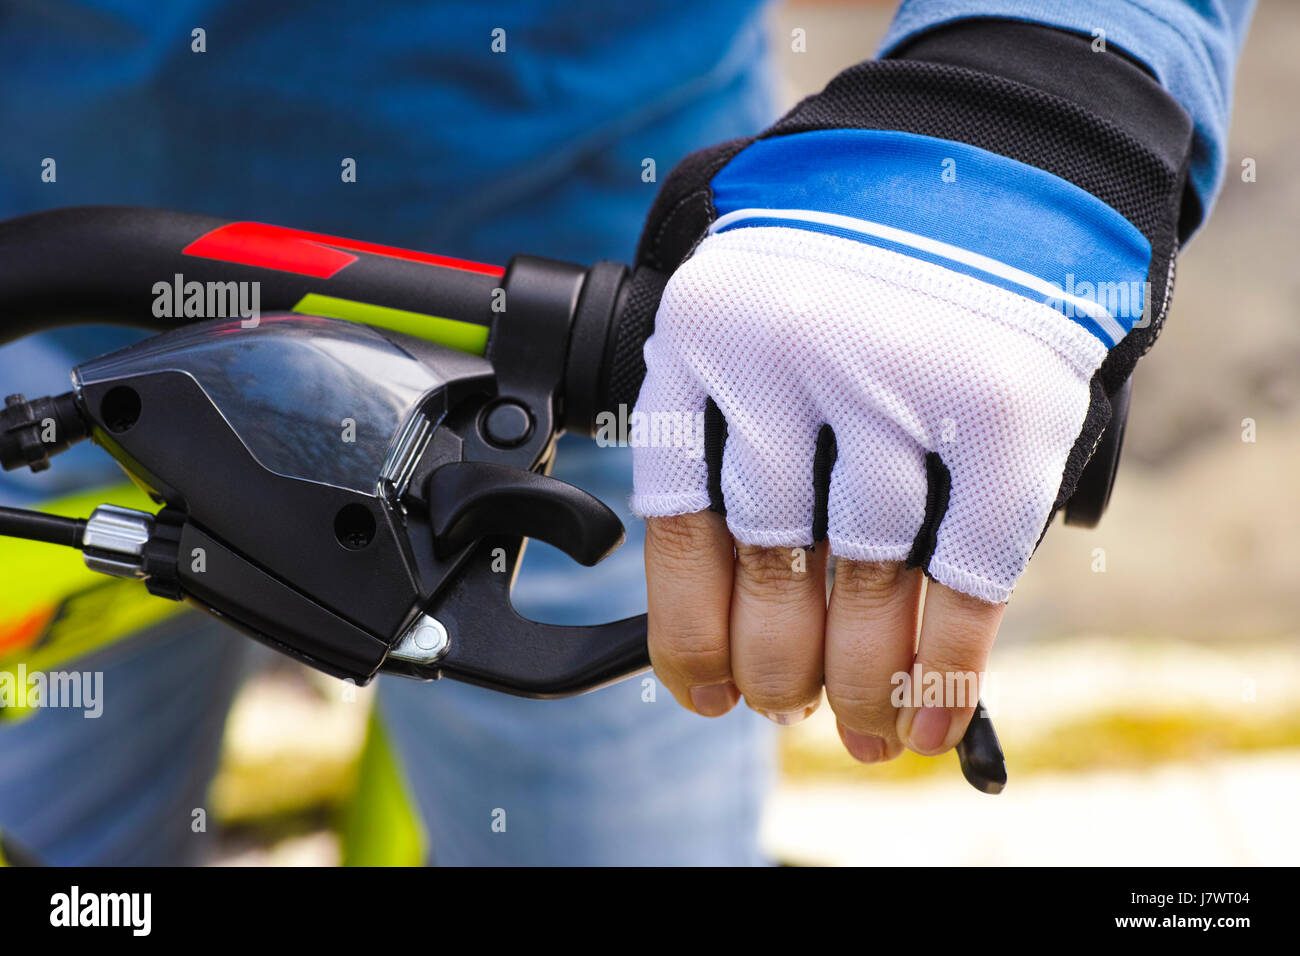 Child hand with glove on handlebars with brake lever. Close-up. - Stock Image